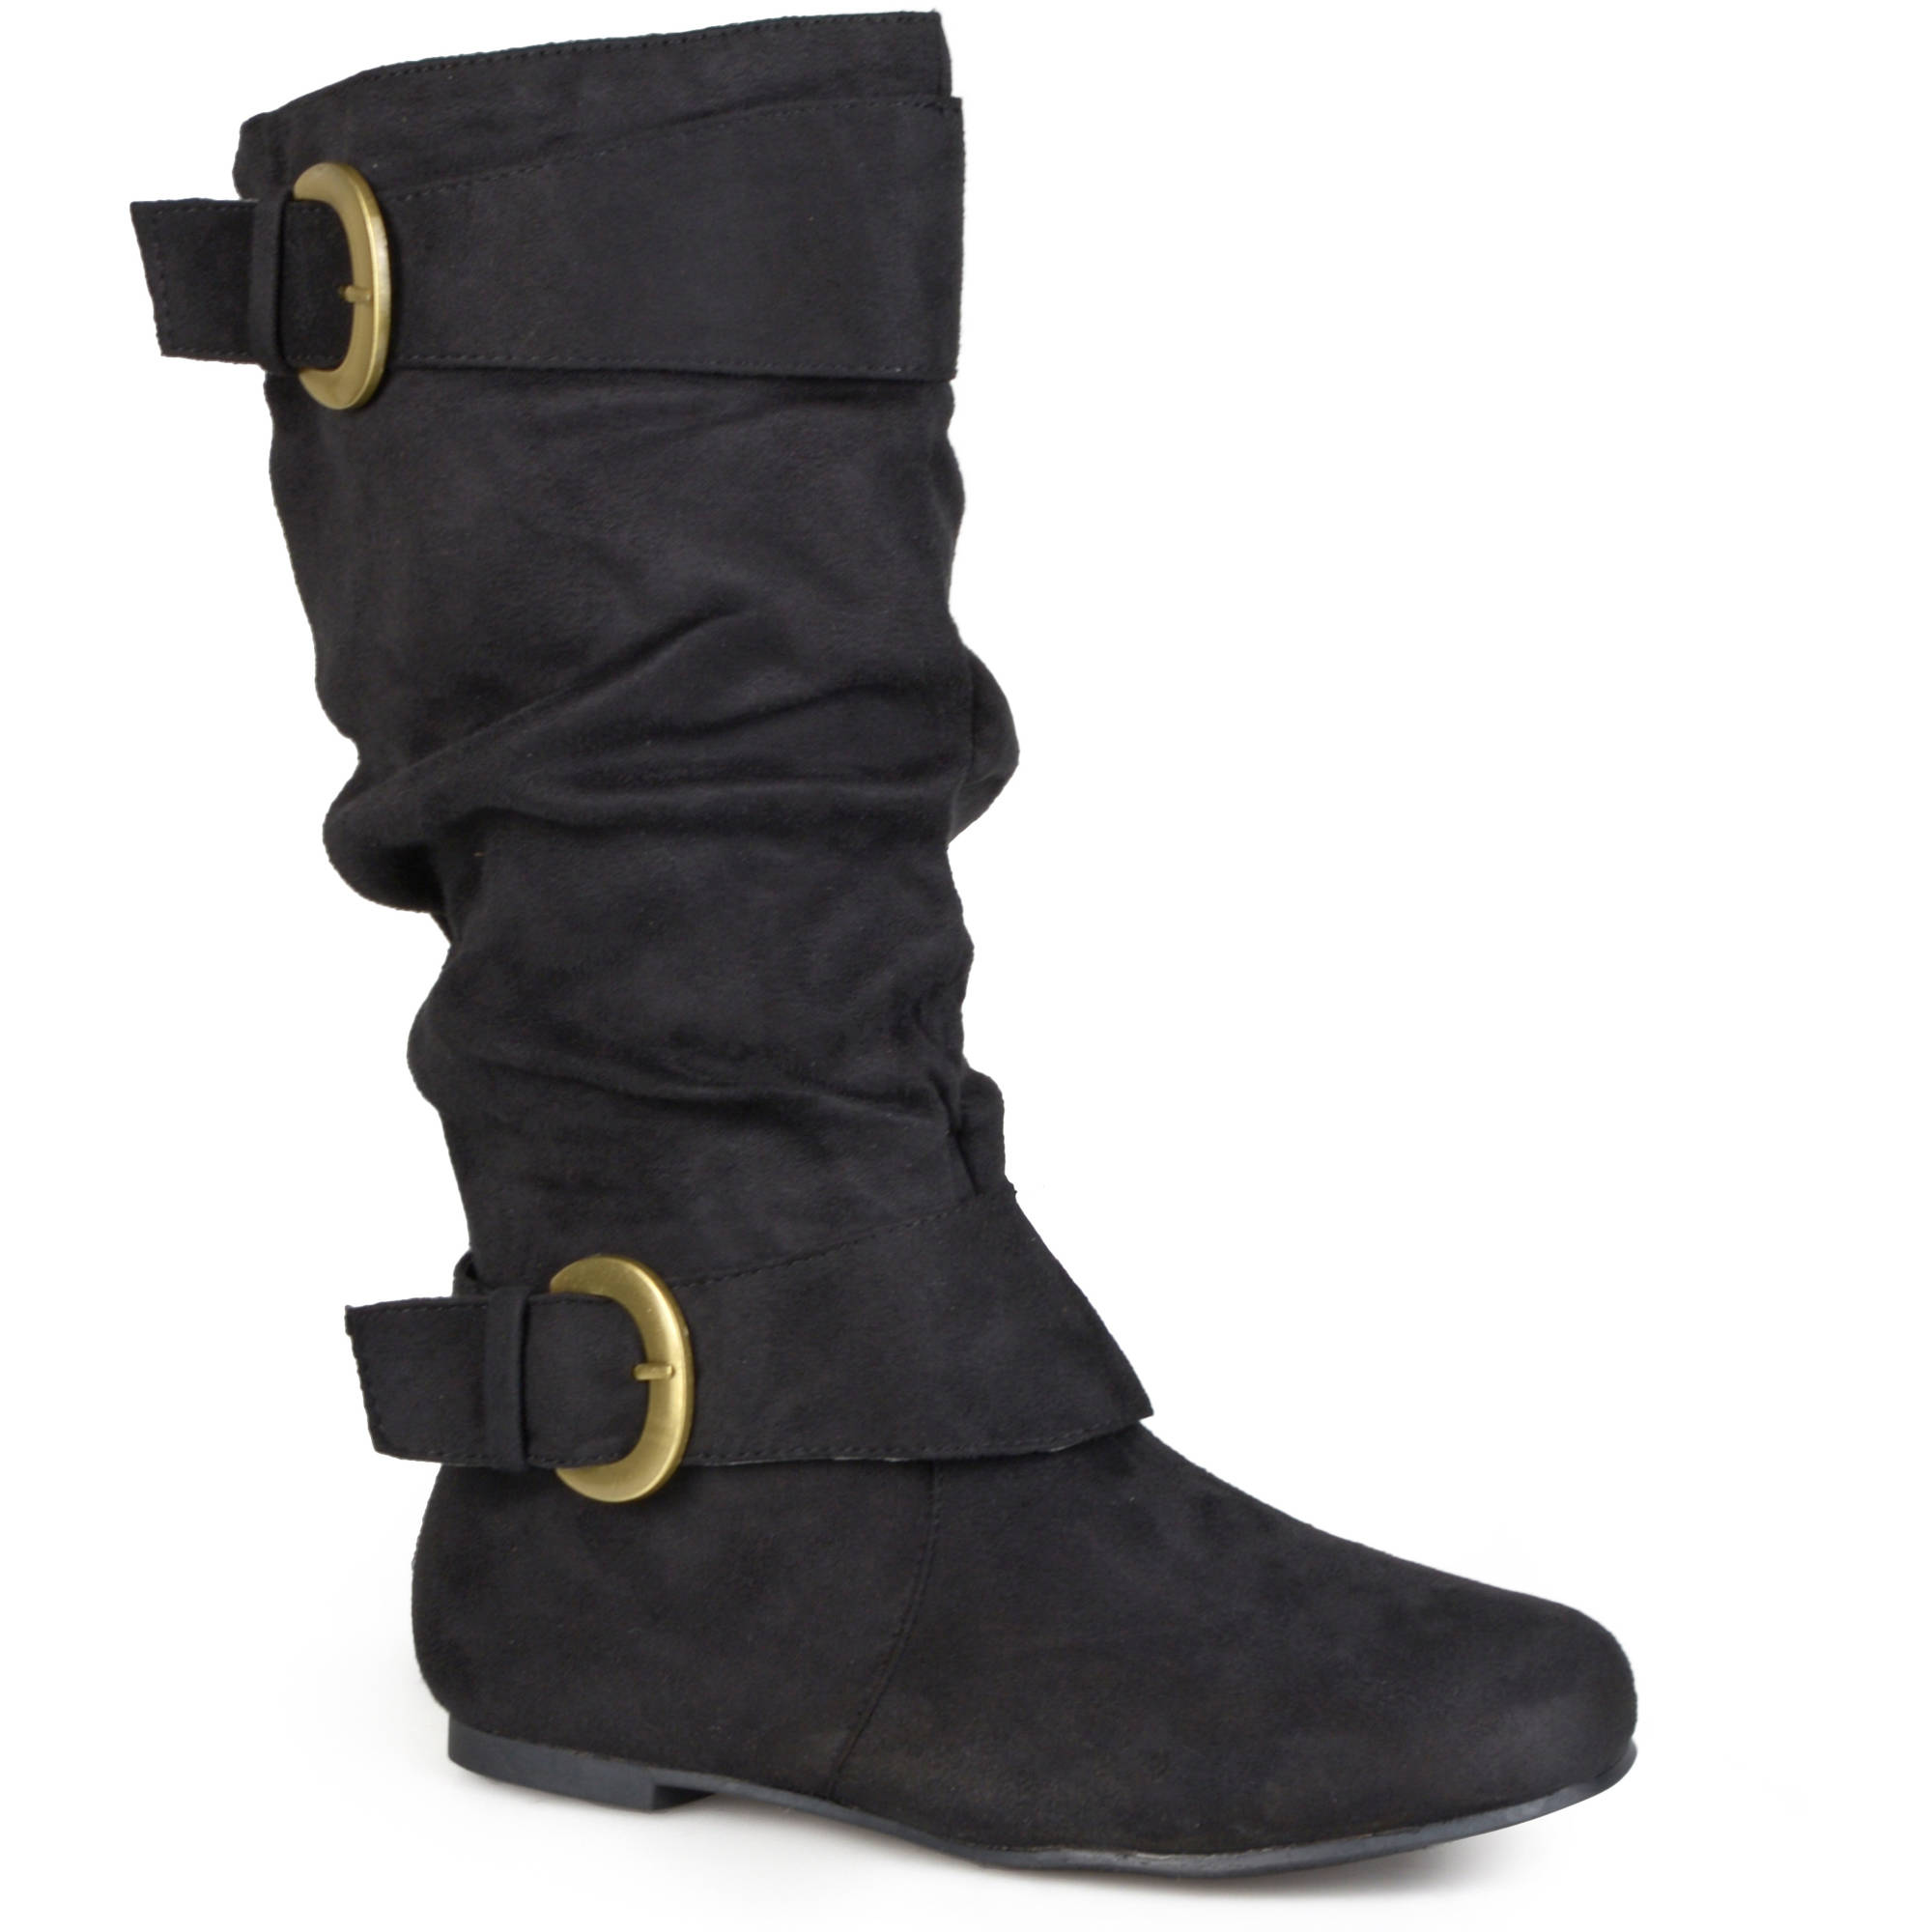 Brinley Co. - Women's Buckle Accent Faux Suede Slouchy Boots